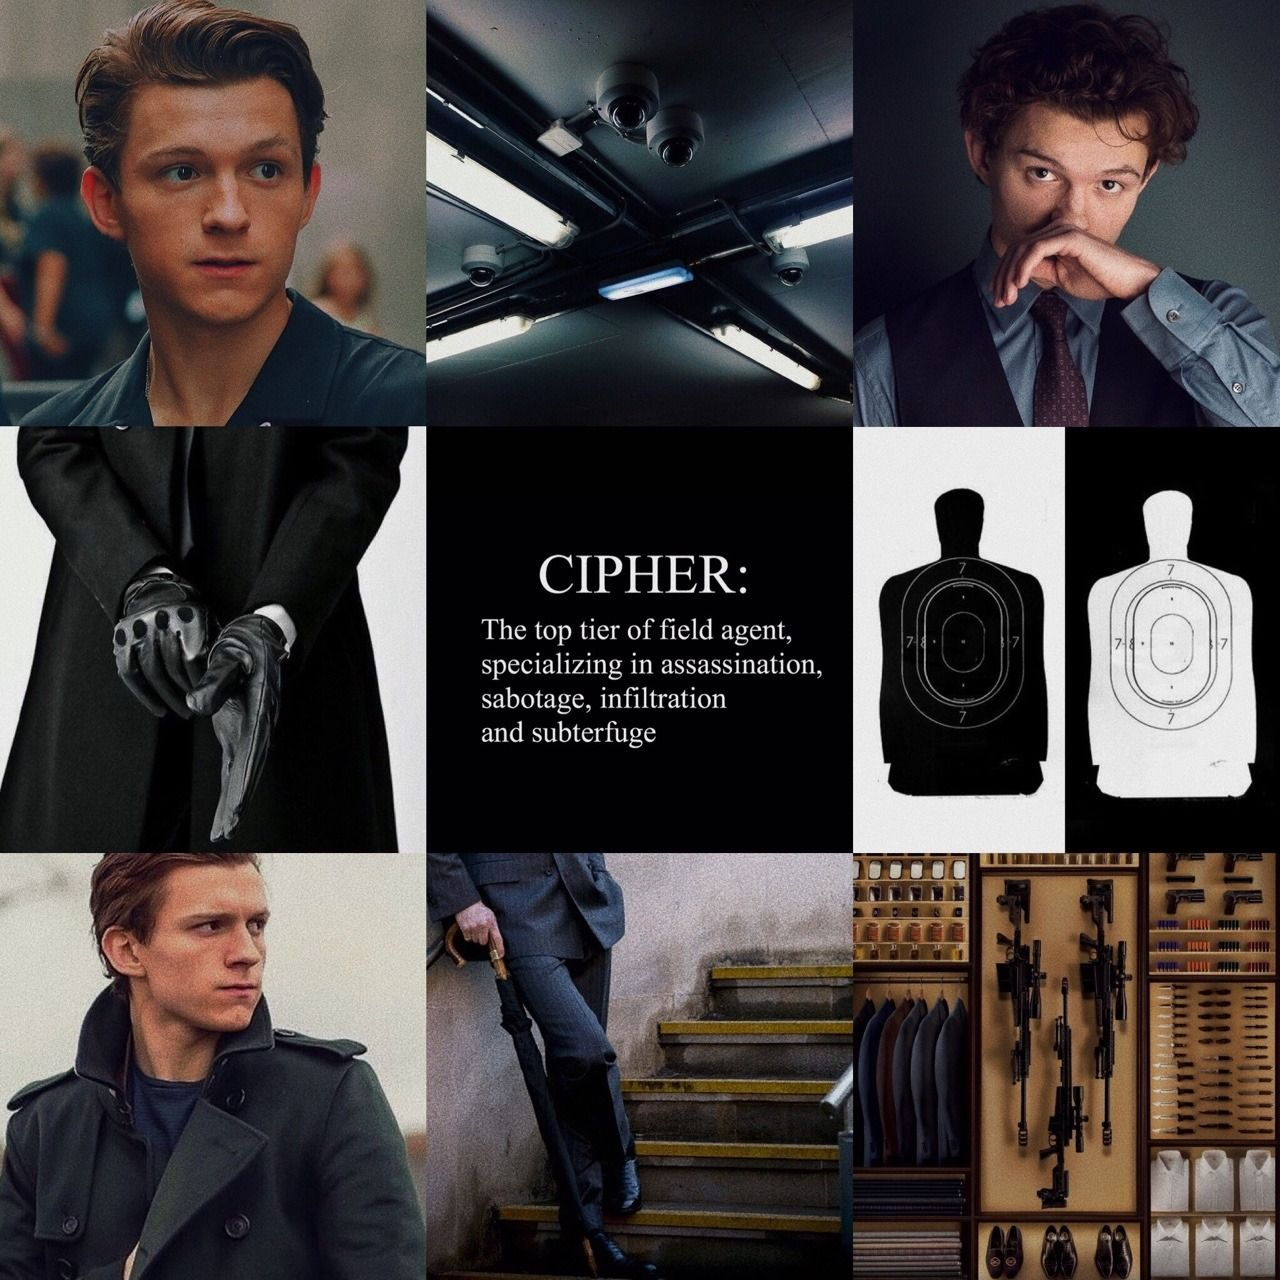 AU: Tom Holland as a Spy requested by anonymous aesthetic 28